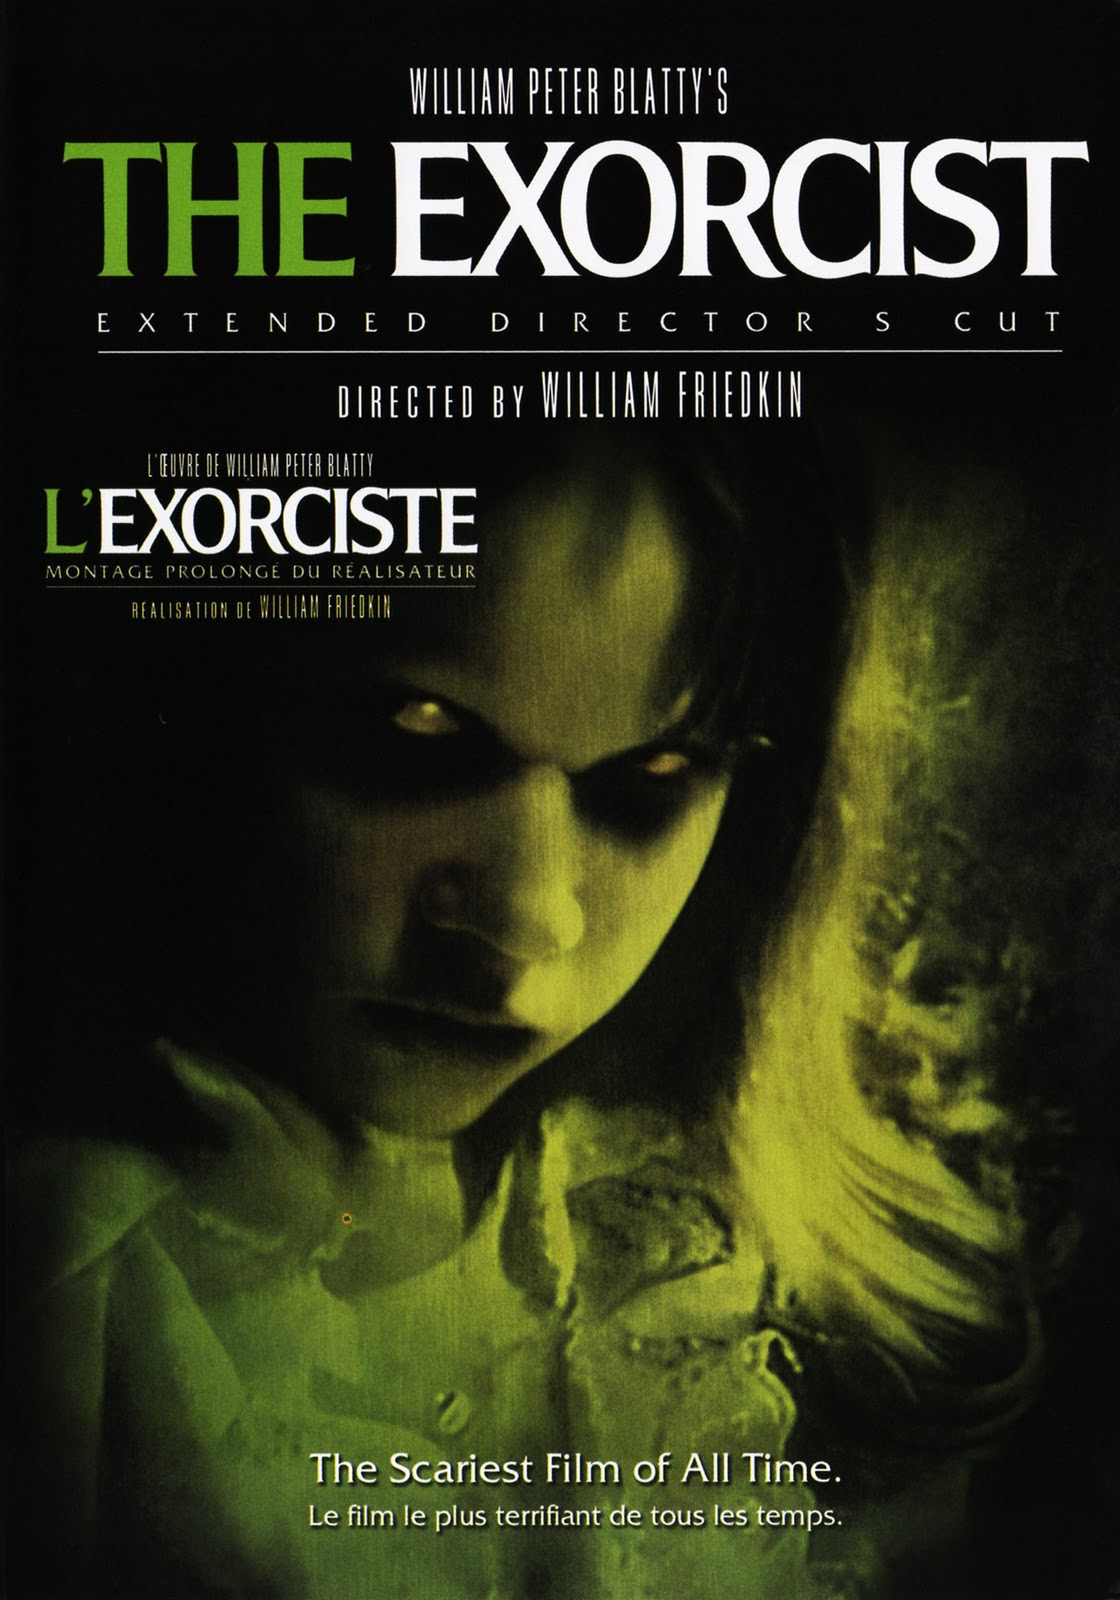 MOVIE POSTERS: THE EXORCIST (1973)